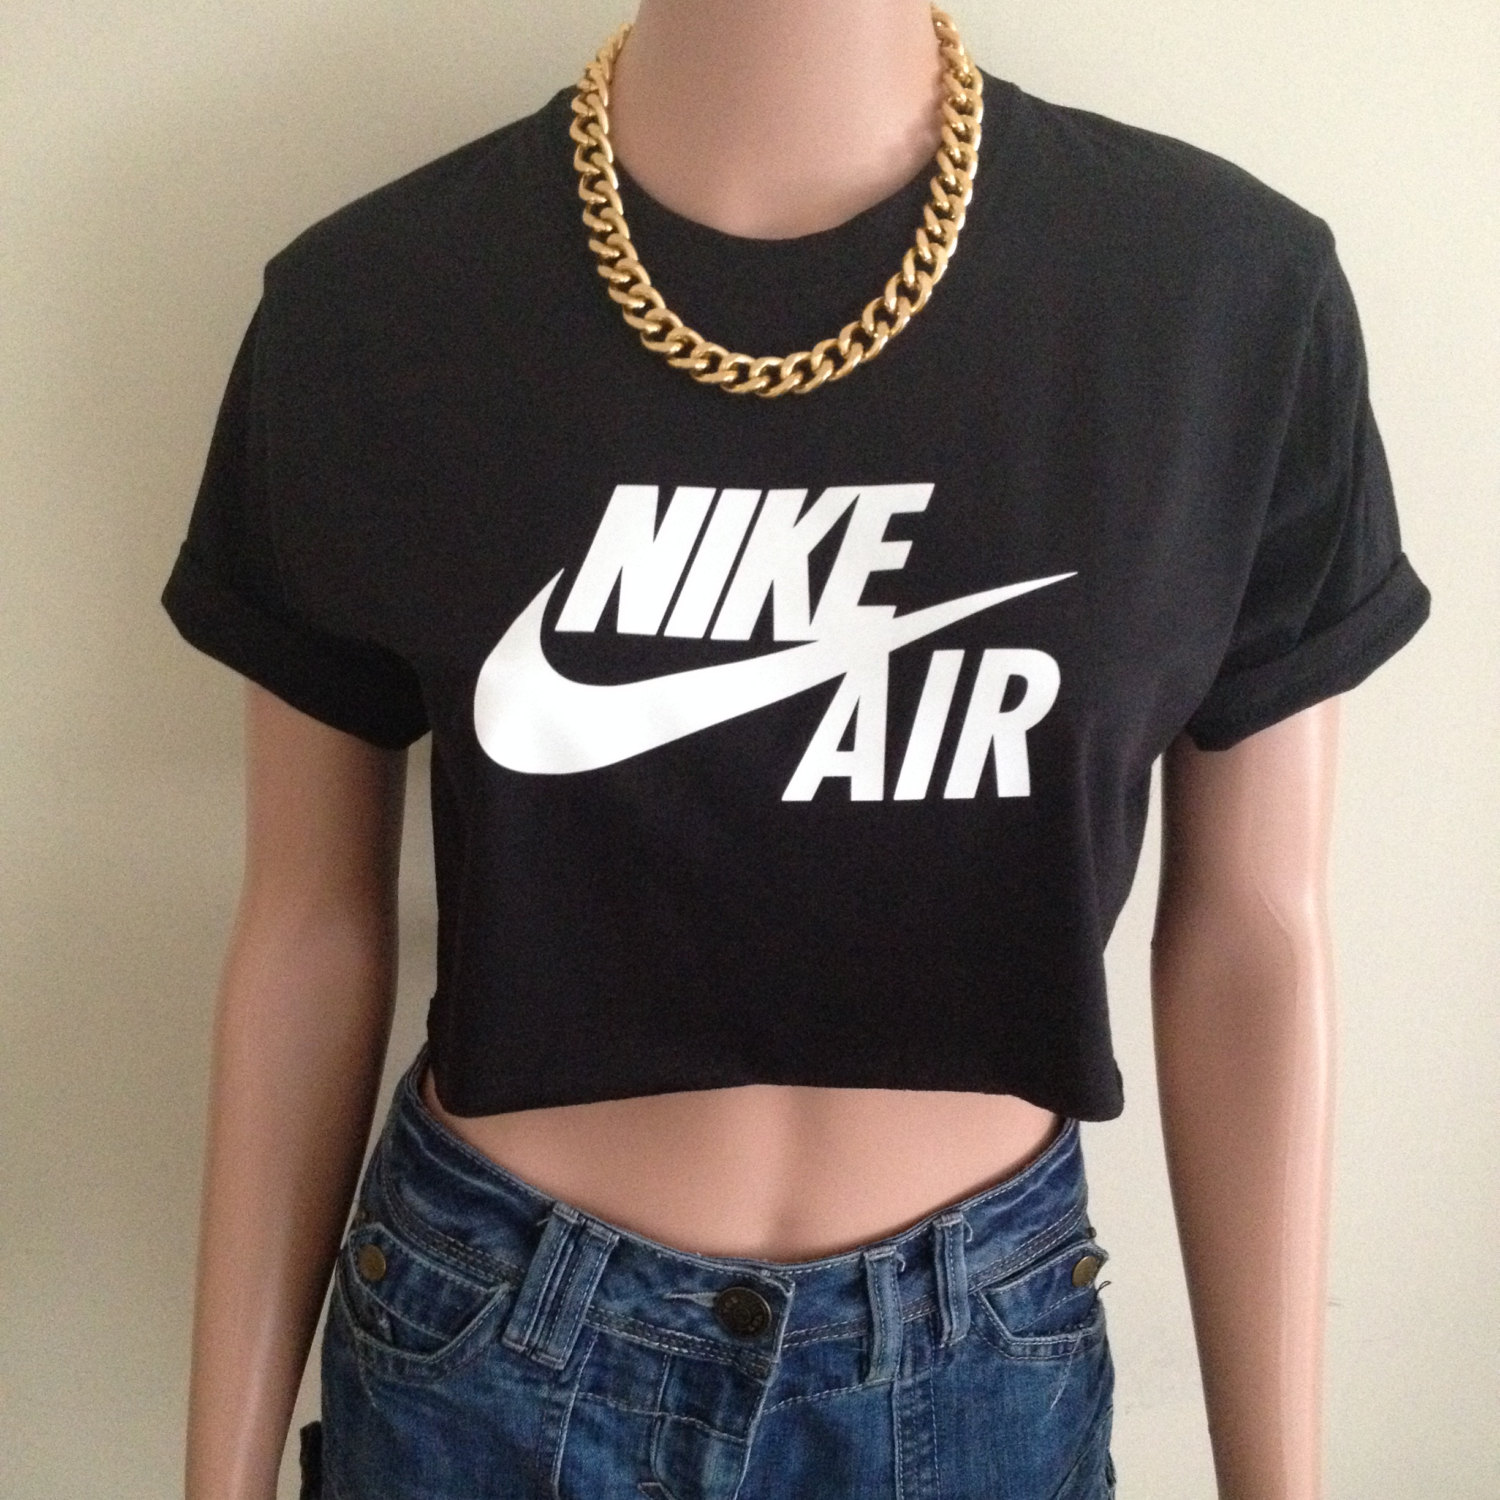 nike air max short sleeved black crop top tee t shirt hipster. Black Bedroom Furniture Sets. Home Design Ideas